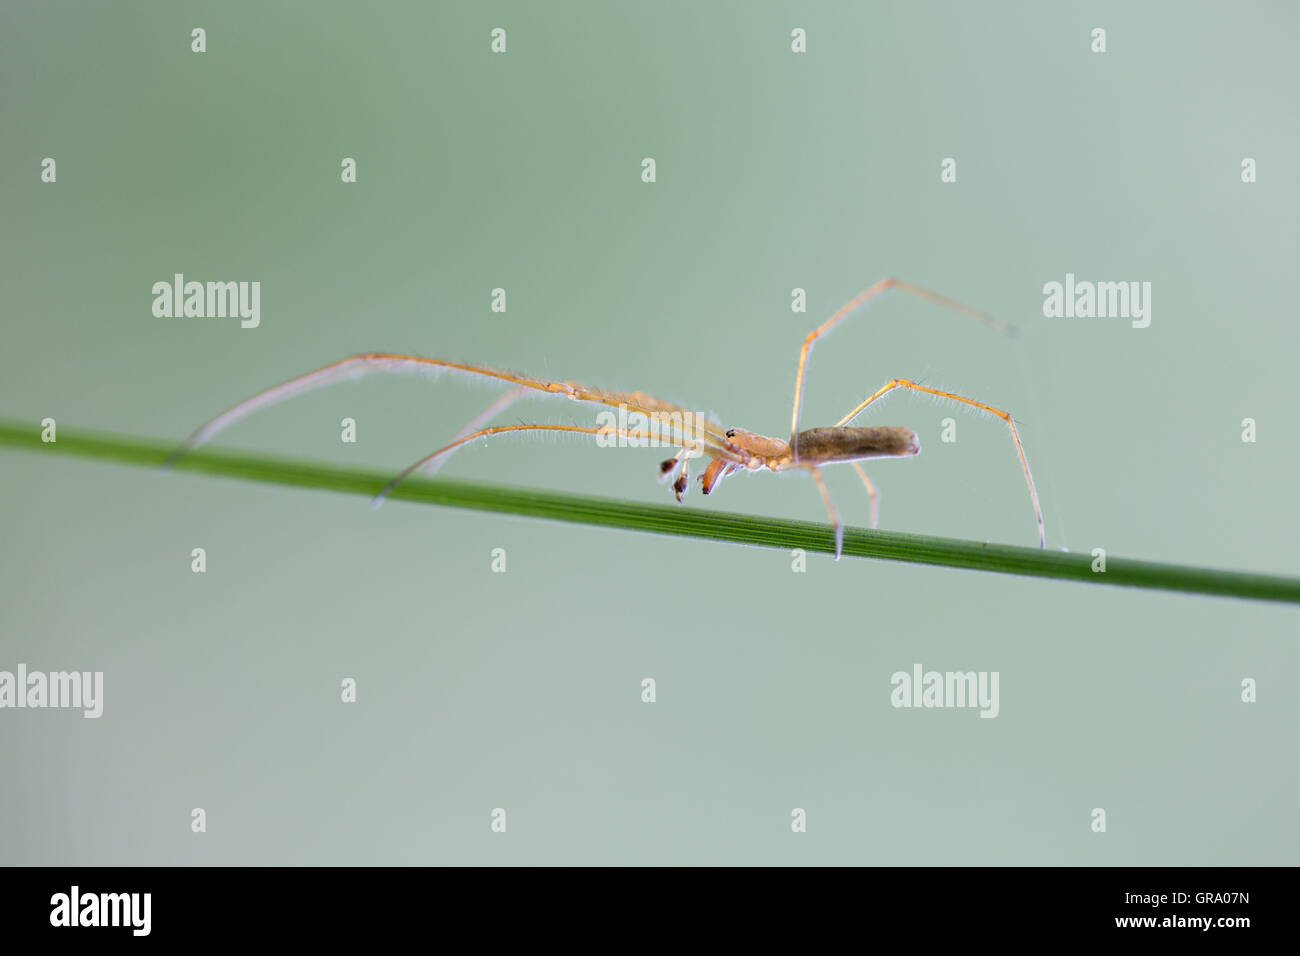 Small Spider On A Blade Of Gras - Stock Image